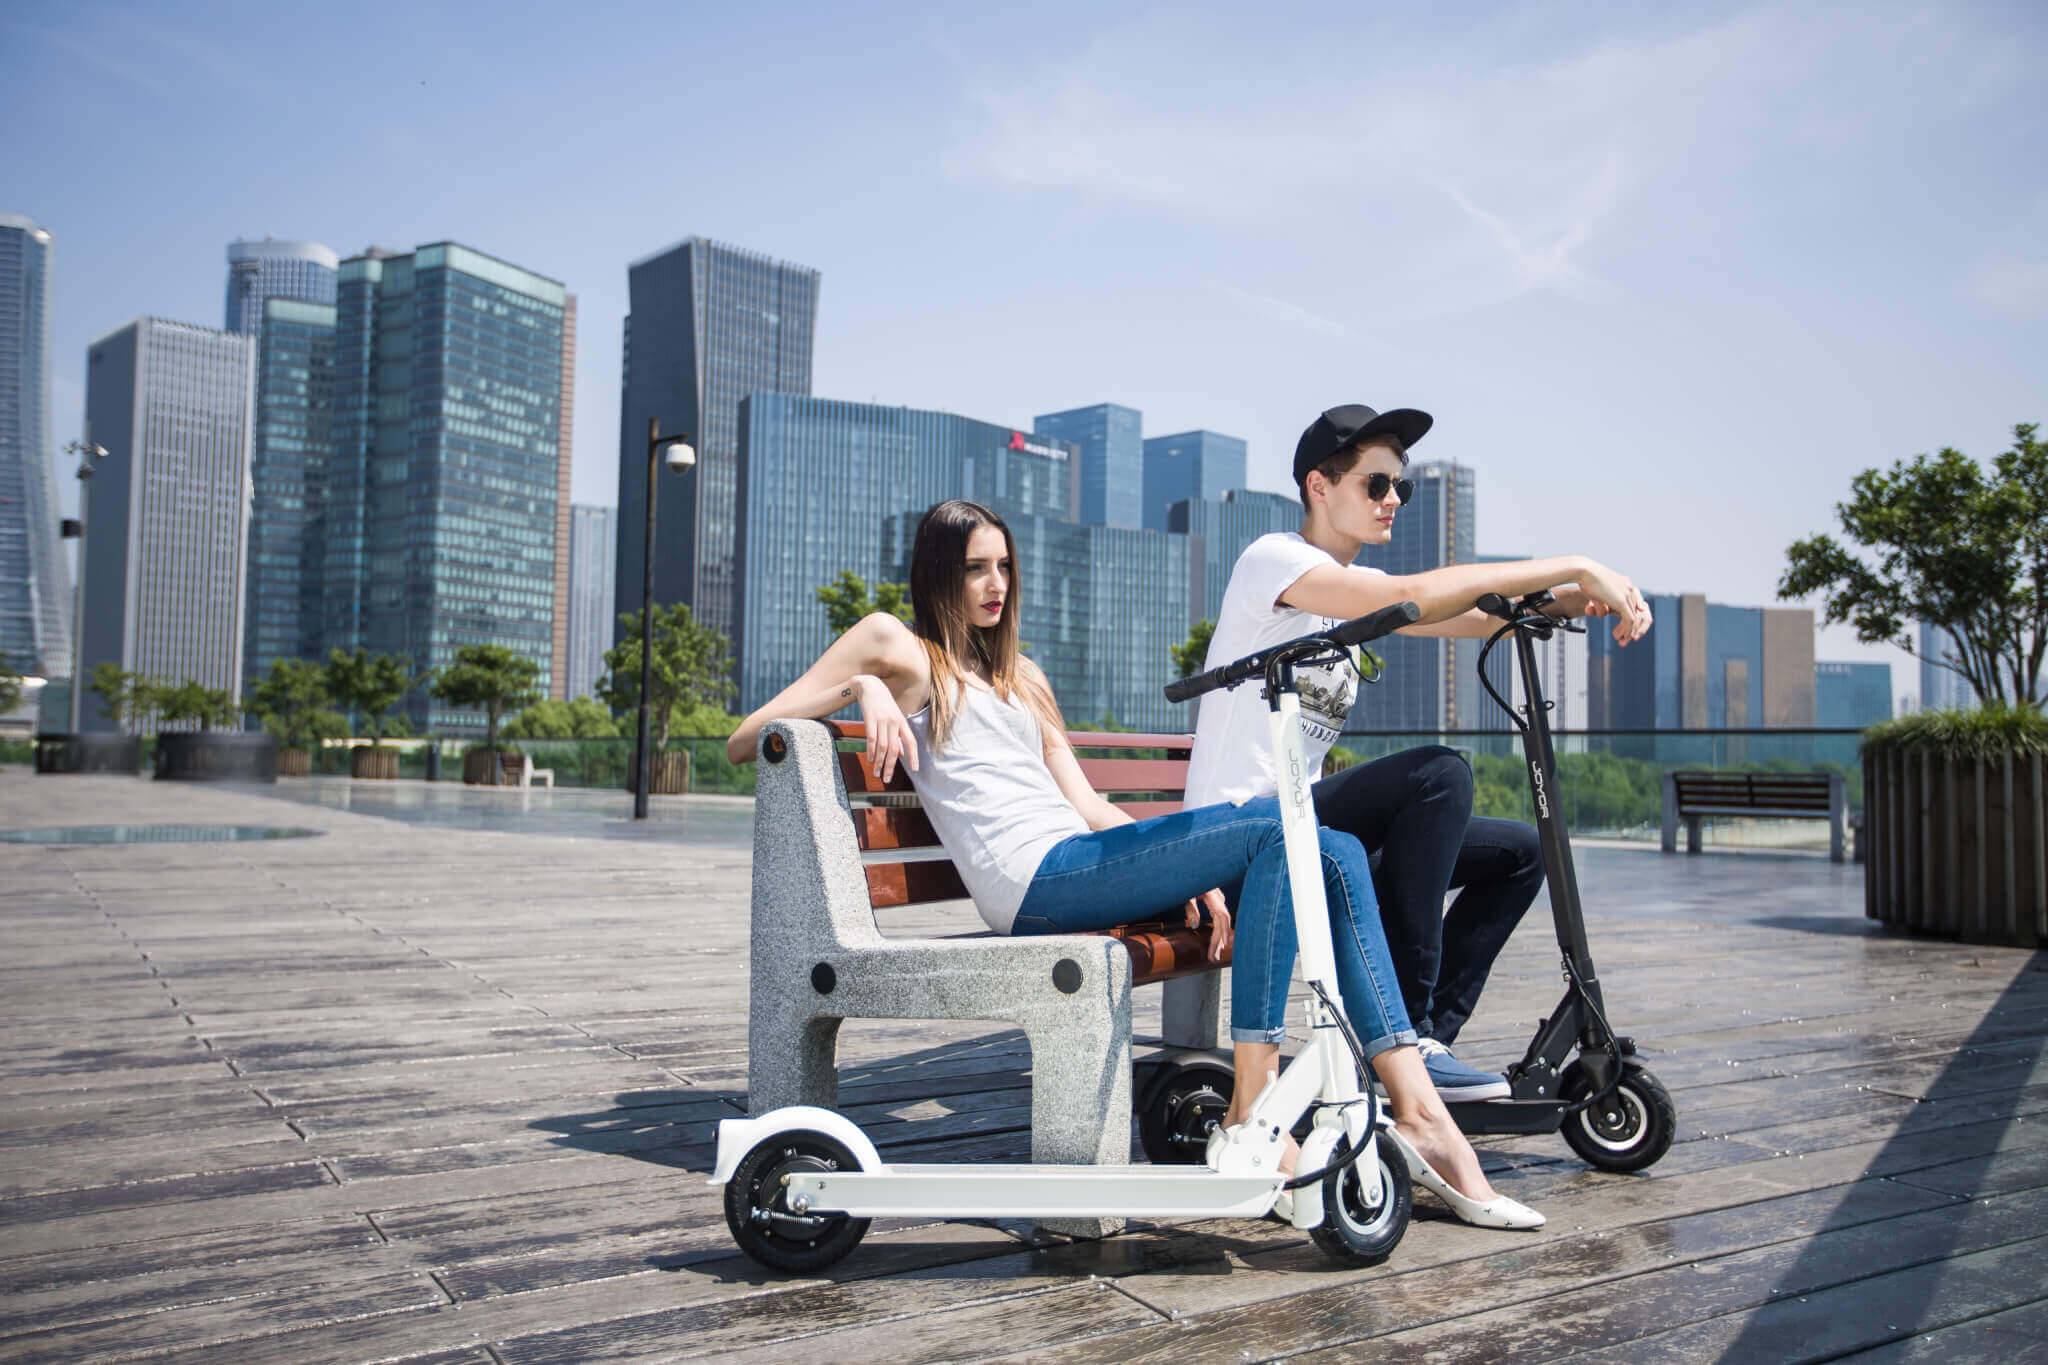 How Much Does it Cost to Have an Electric Scooter?